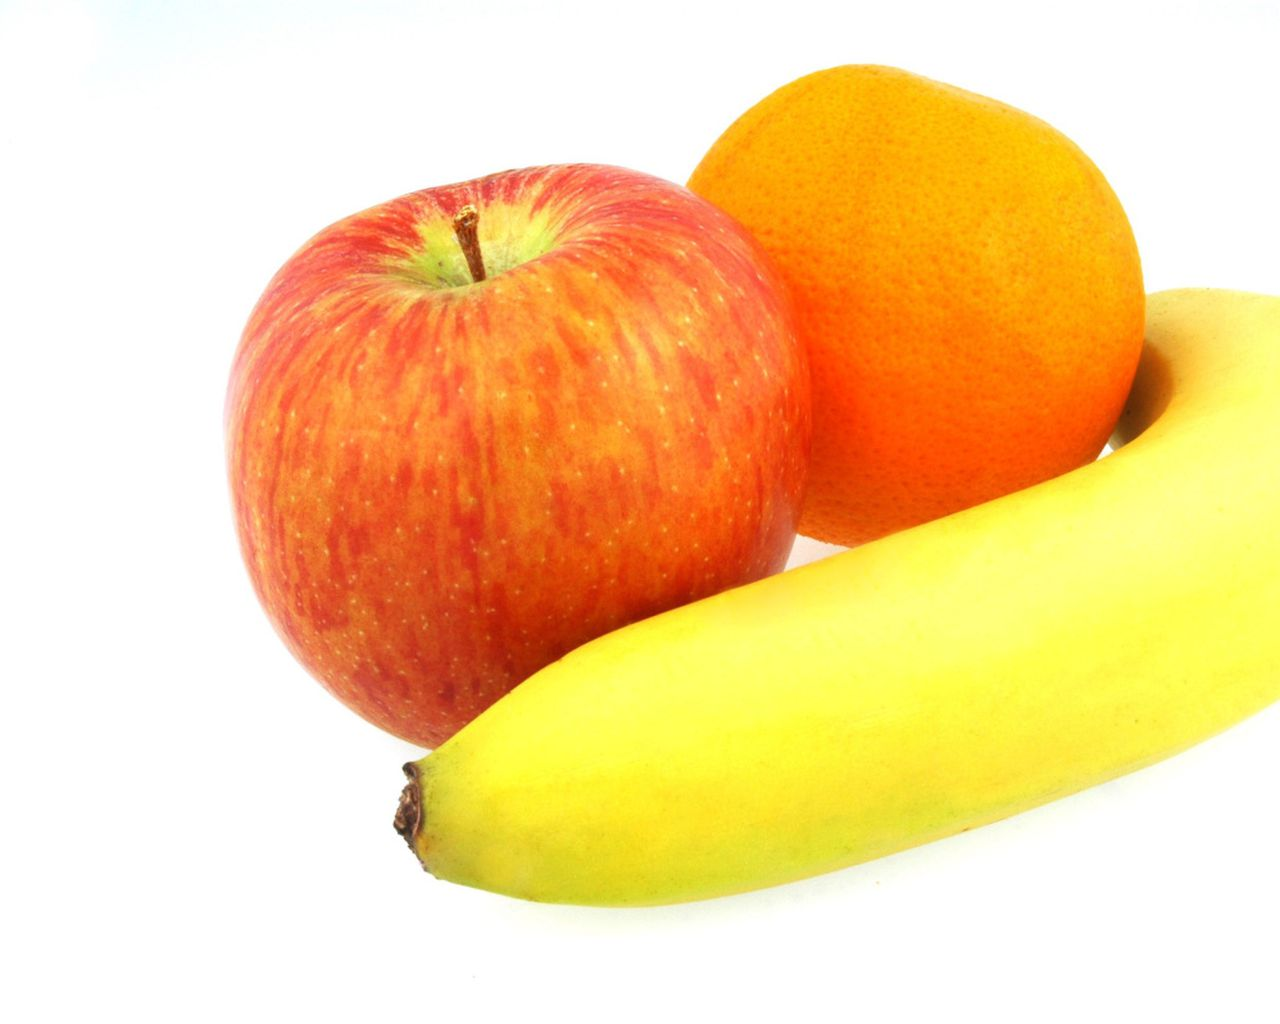 apple, banana & orange